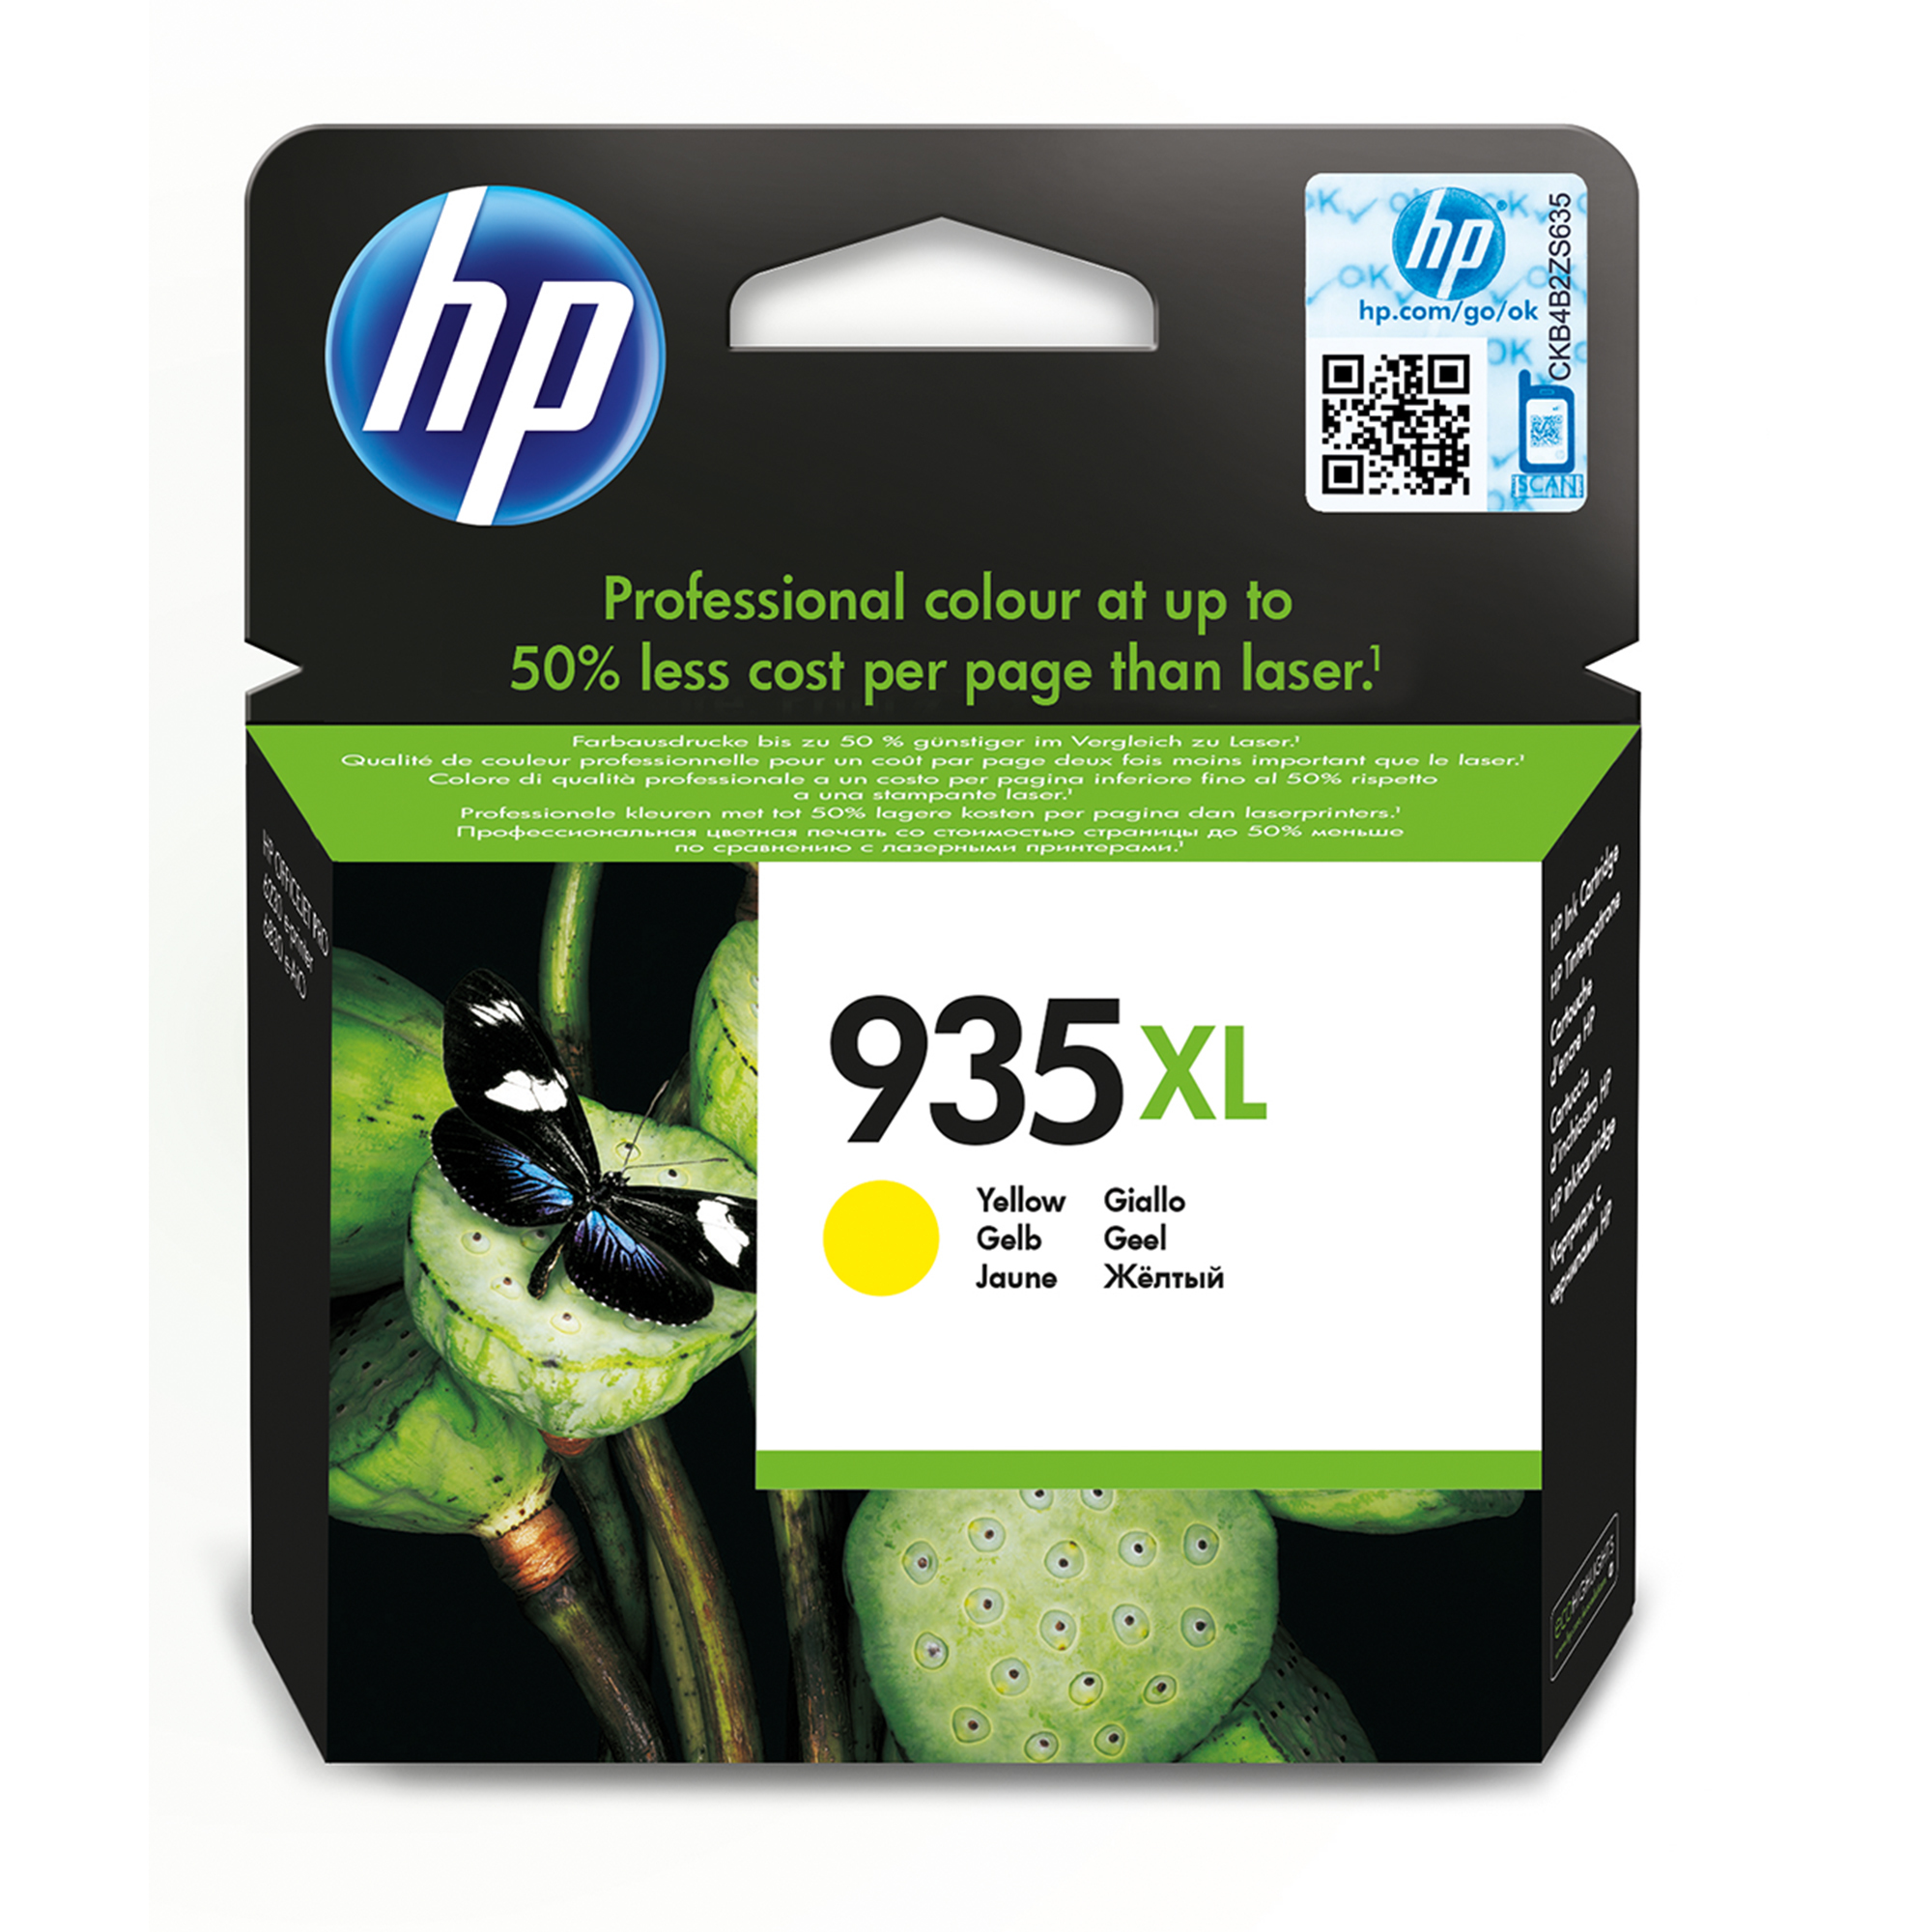 Hp - Inkjet Supply (pl1n) Mvs    Ink Cartridge No 935xl Yellow       Officejet De Uk Fr It Nl Se Be      C2p26ae#bgx